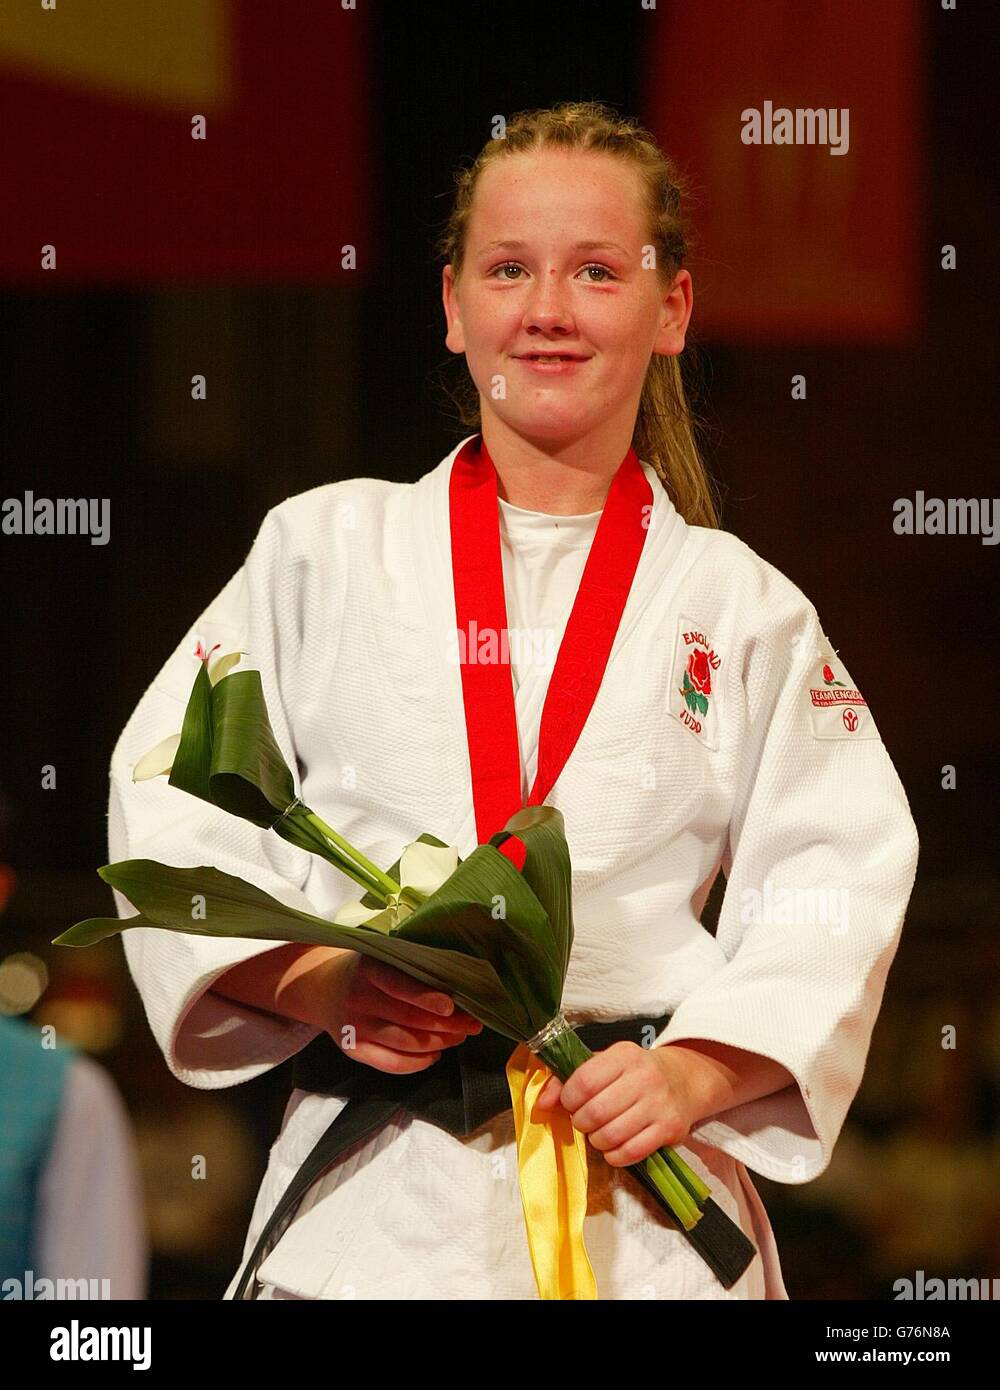 Womens 48kg Judo - England Silver medalist Clare Lynch - Stock Image